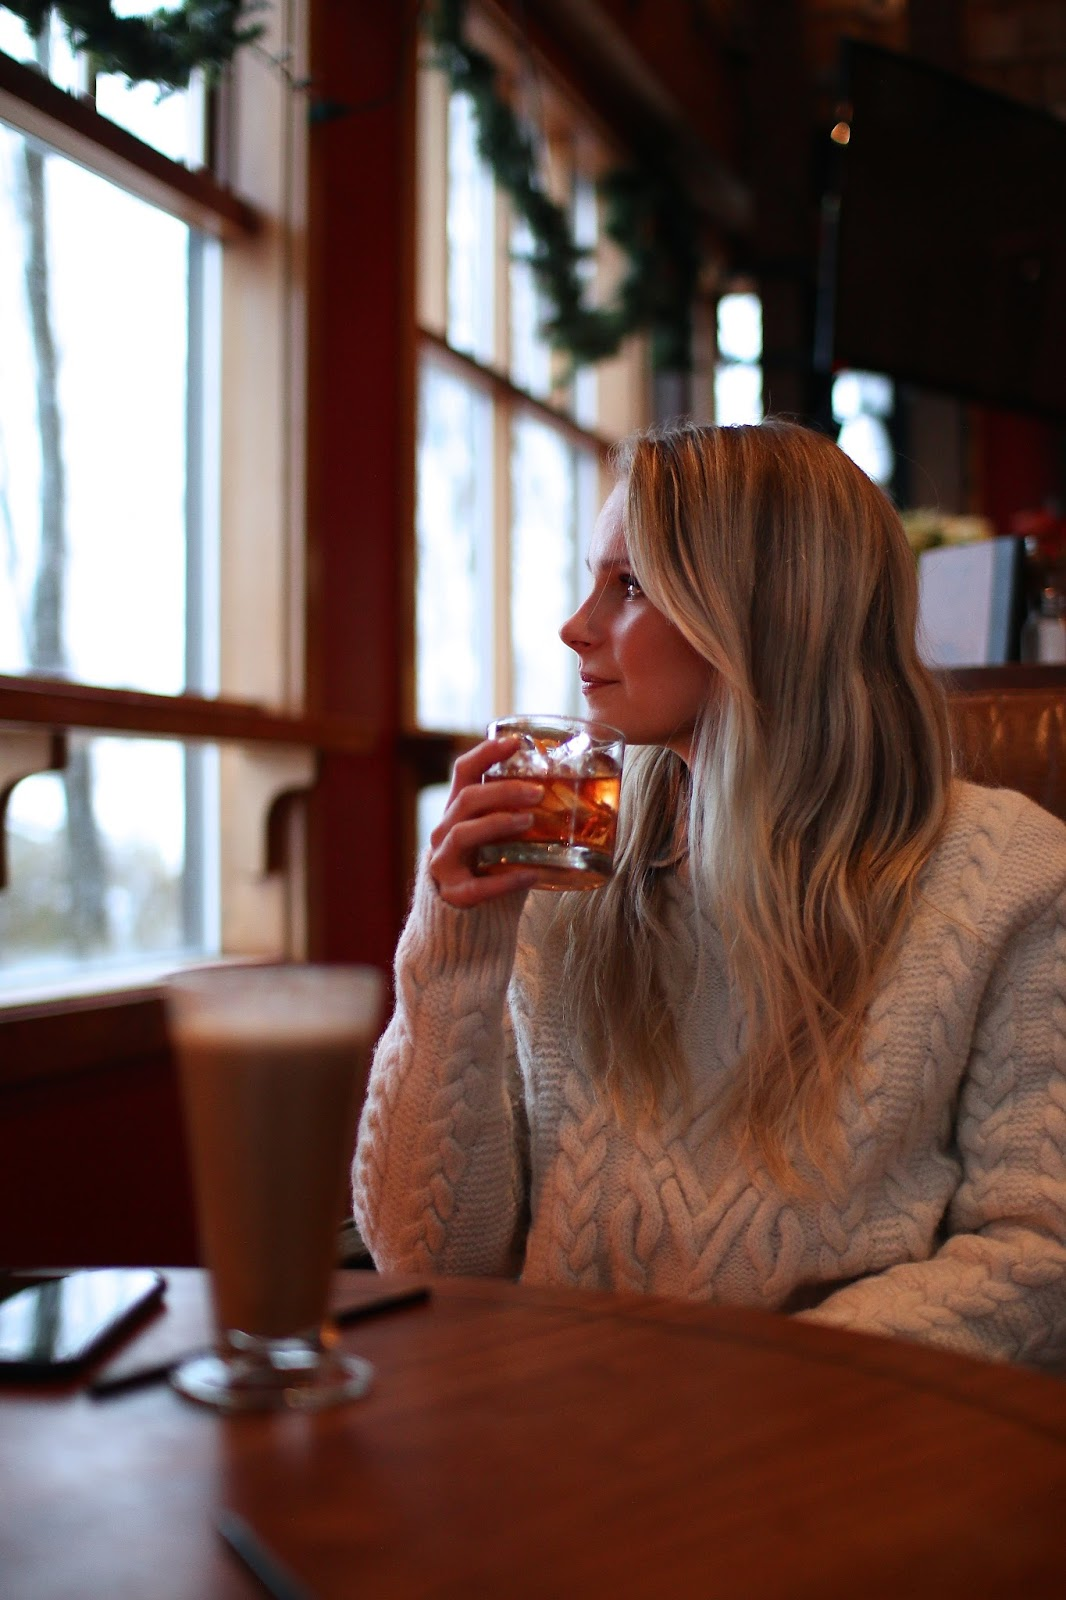 winter cozy in beige cable knit sweater sipping a cozy christmas cocktail